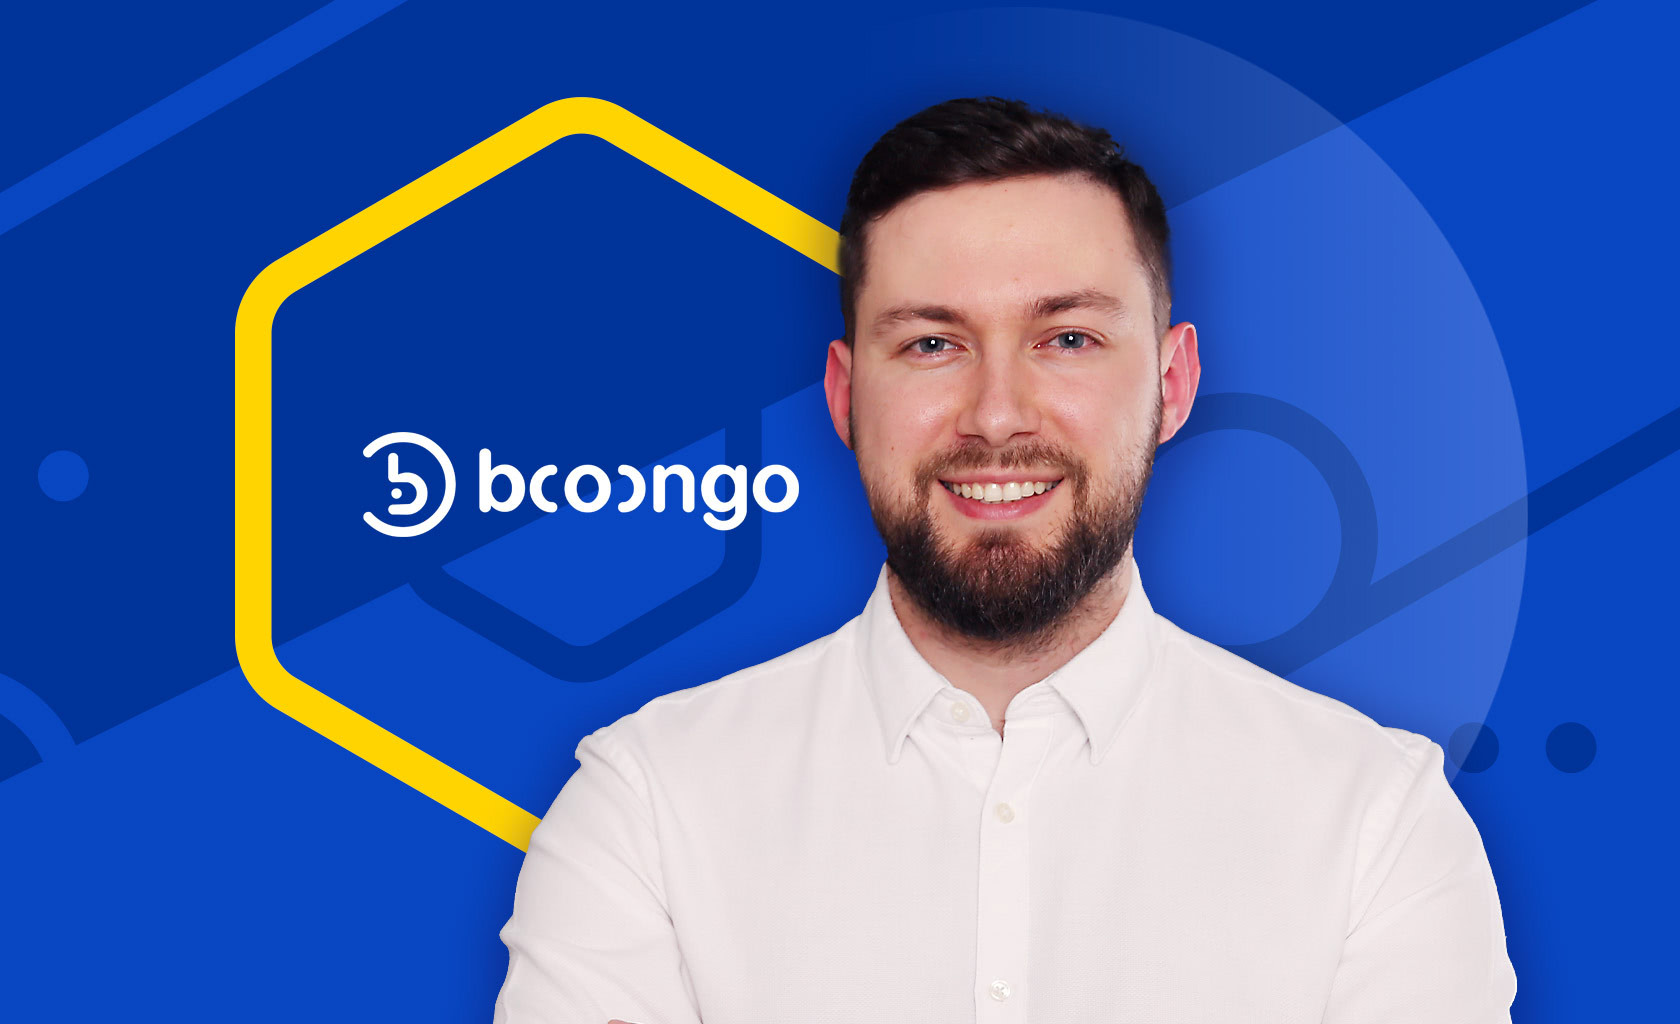 boongo slot provider interview